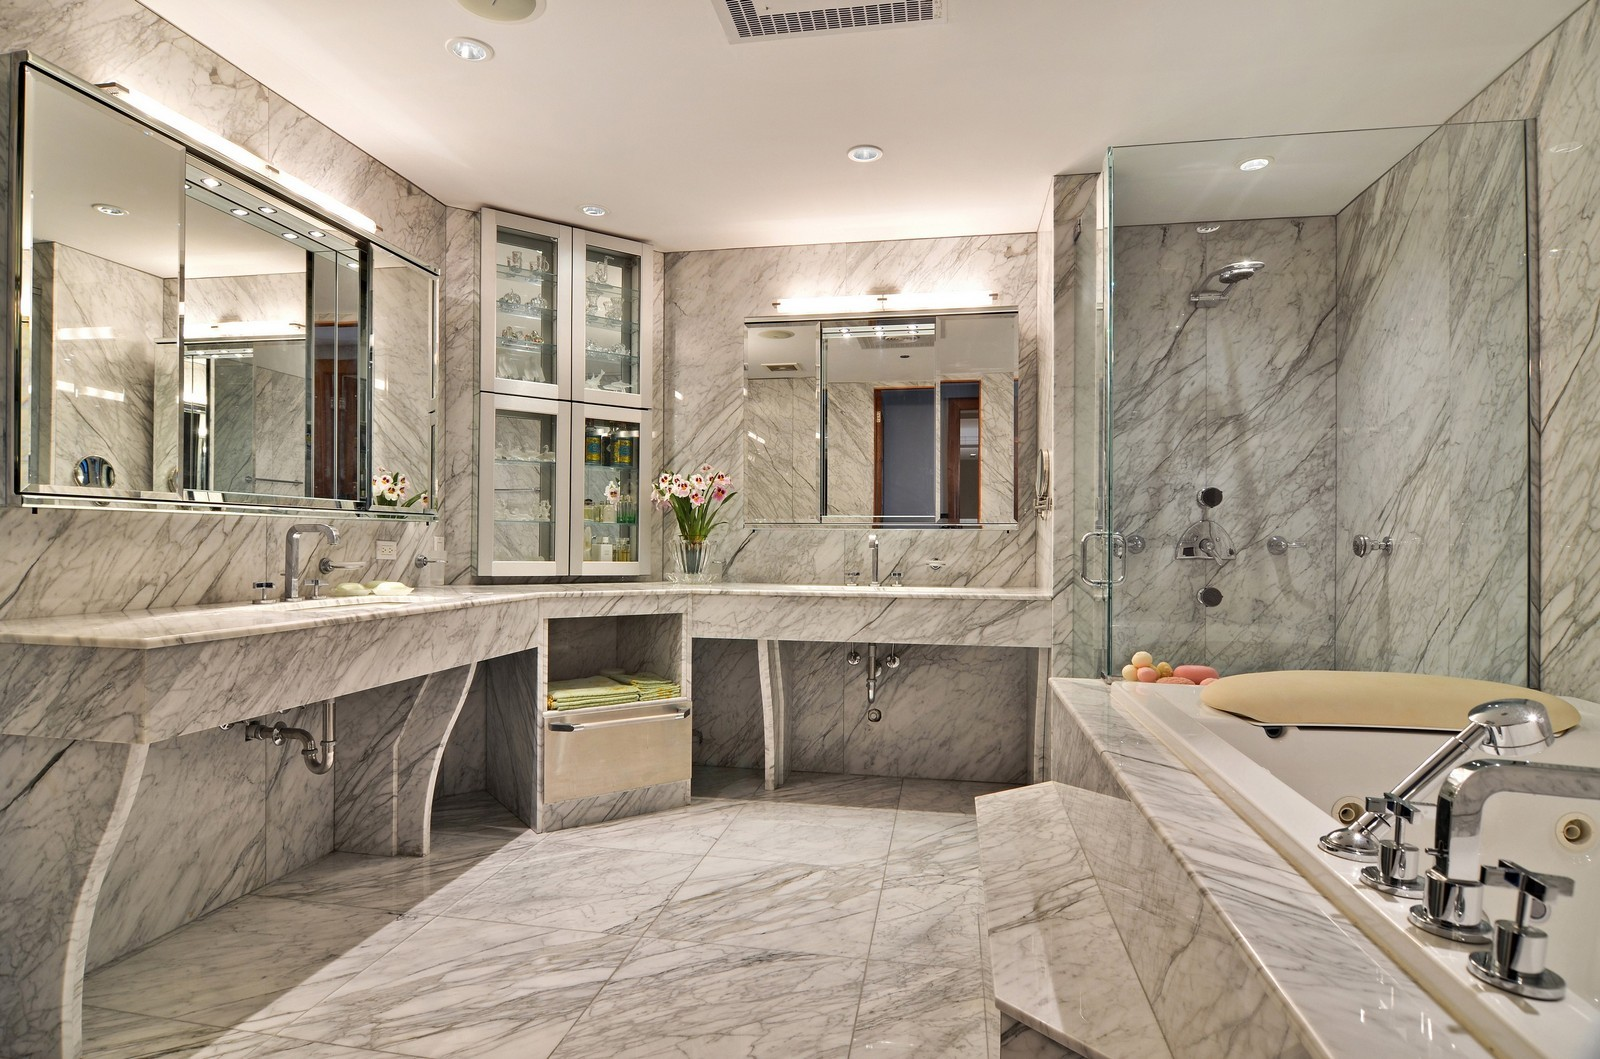 Real Estate Photography - 840 N Lake Shore Dr, Unit 201, Chicago, IL, 60611 - Master Bathroom